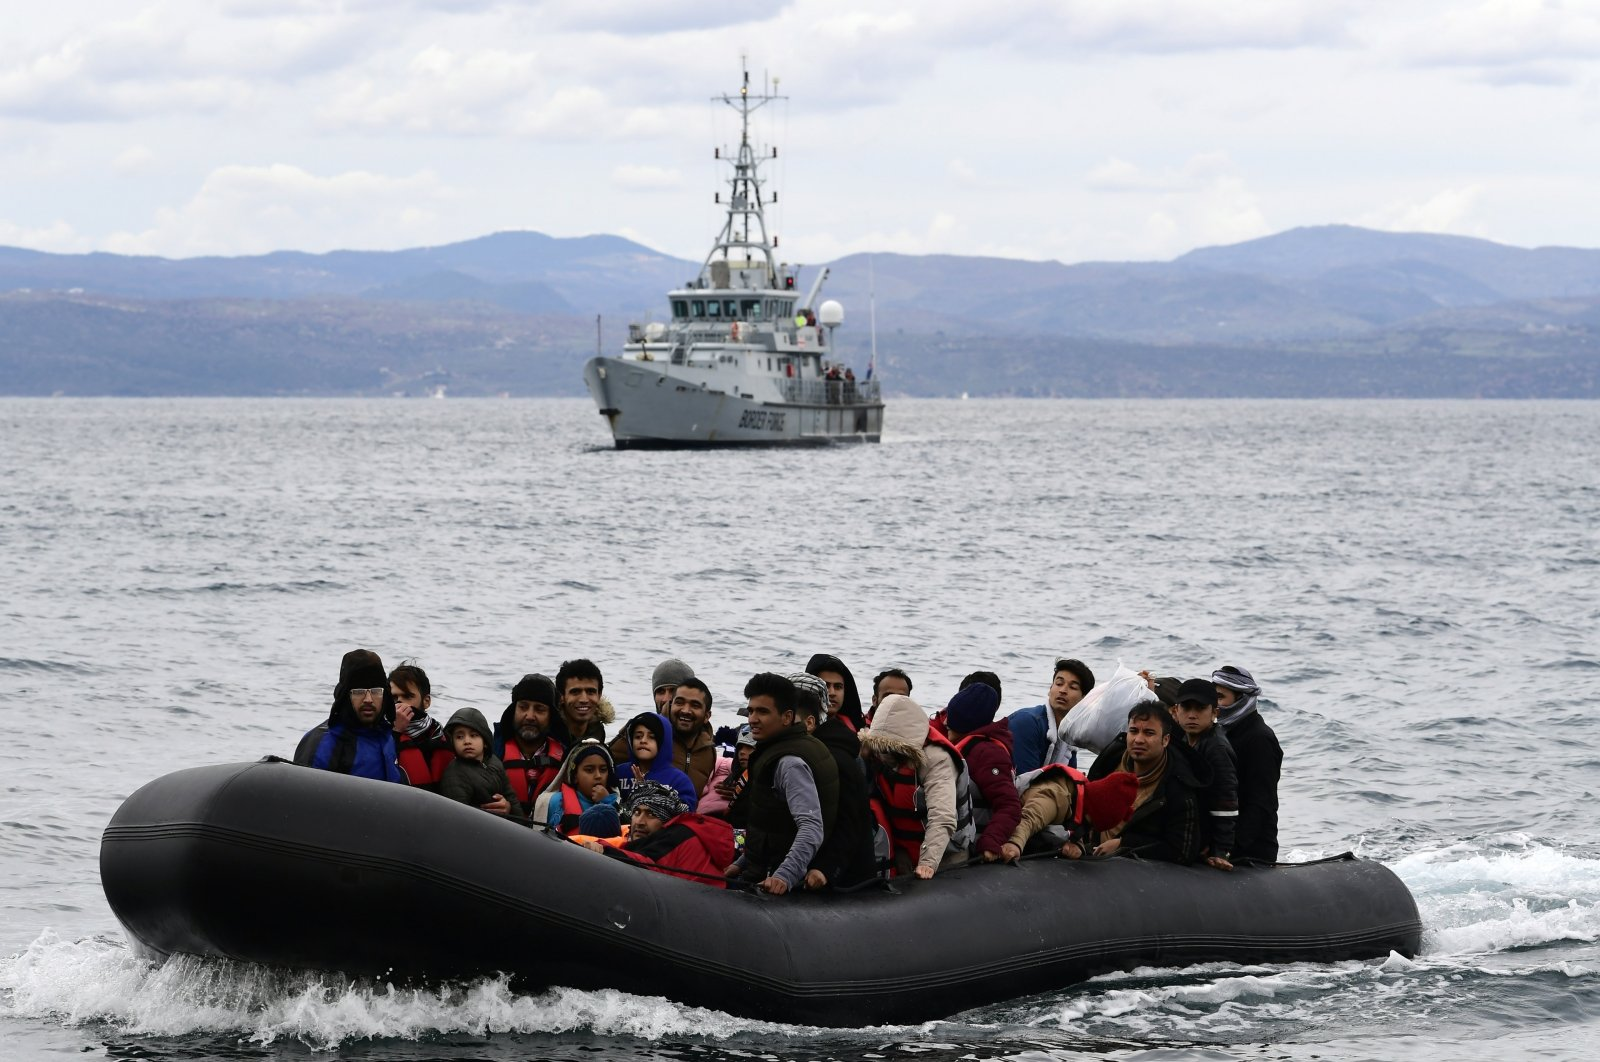 Migrants arrive on a dinghy accompanied by a Frontex vessel at the village of Skala Sikaminias, on the Greek island of Lesbos, after crossing the Aegean sea from Turkey, Feb. 28, 2020. (AP File Photo)